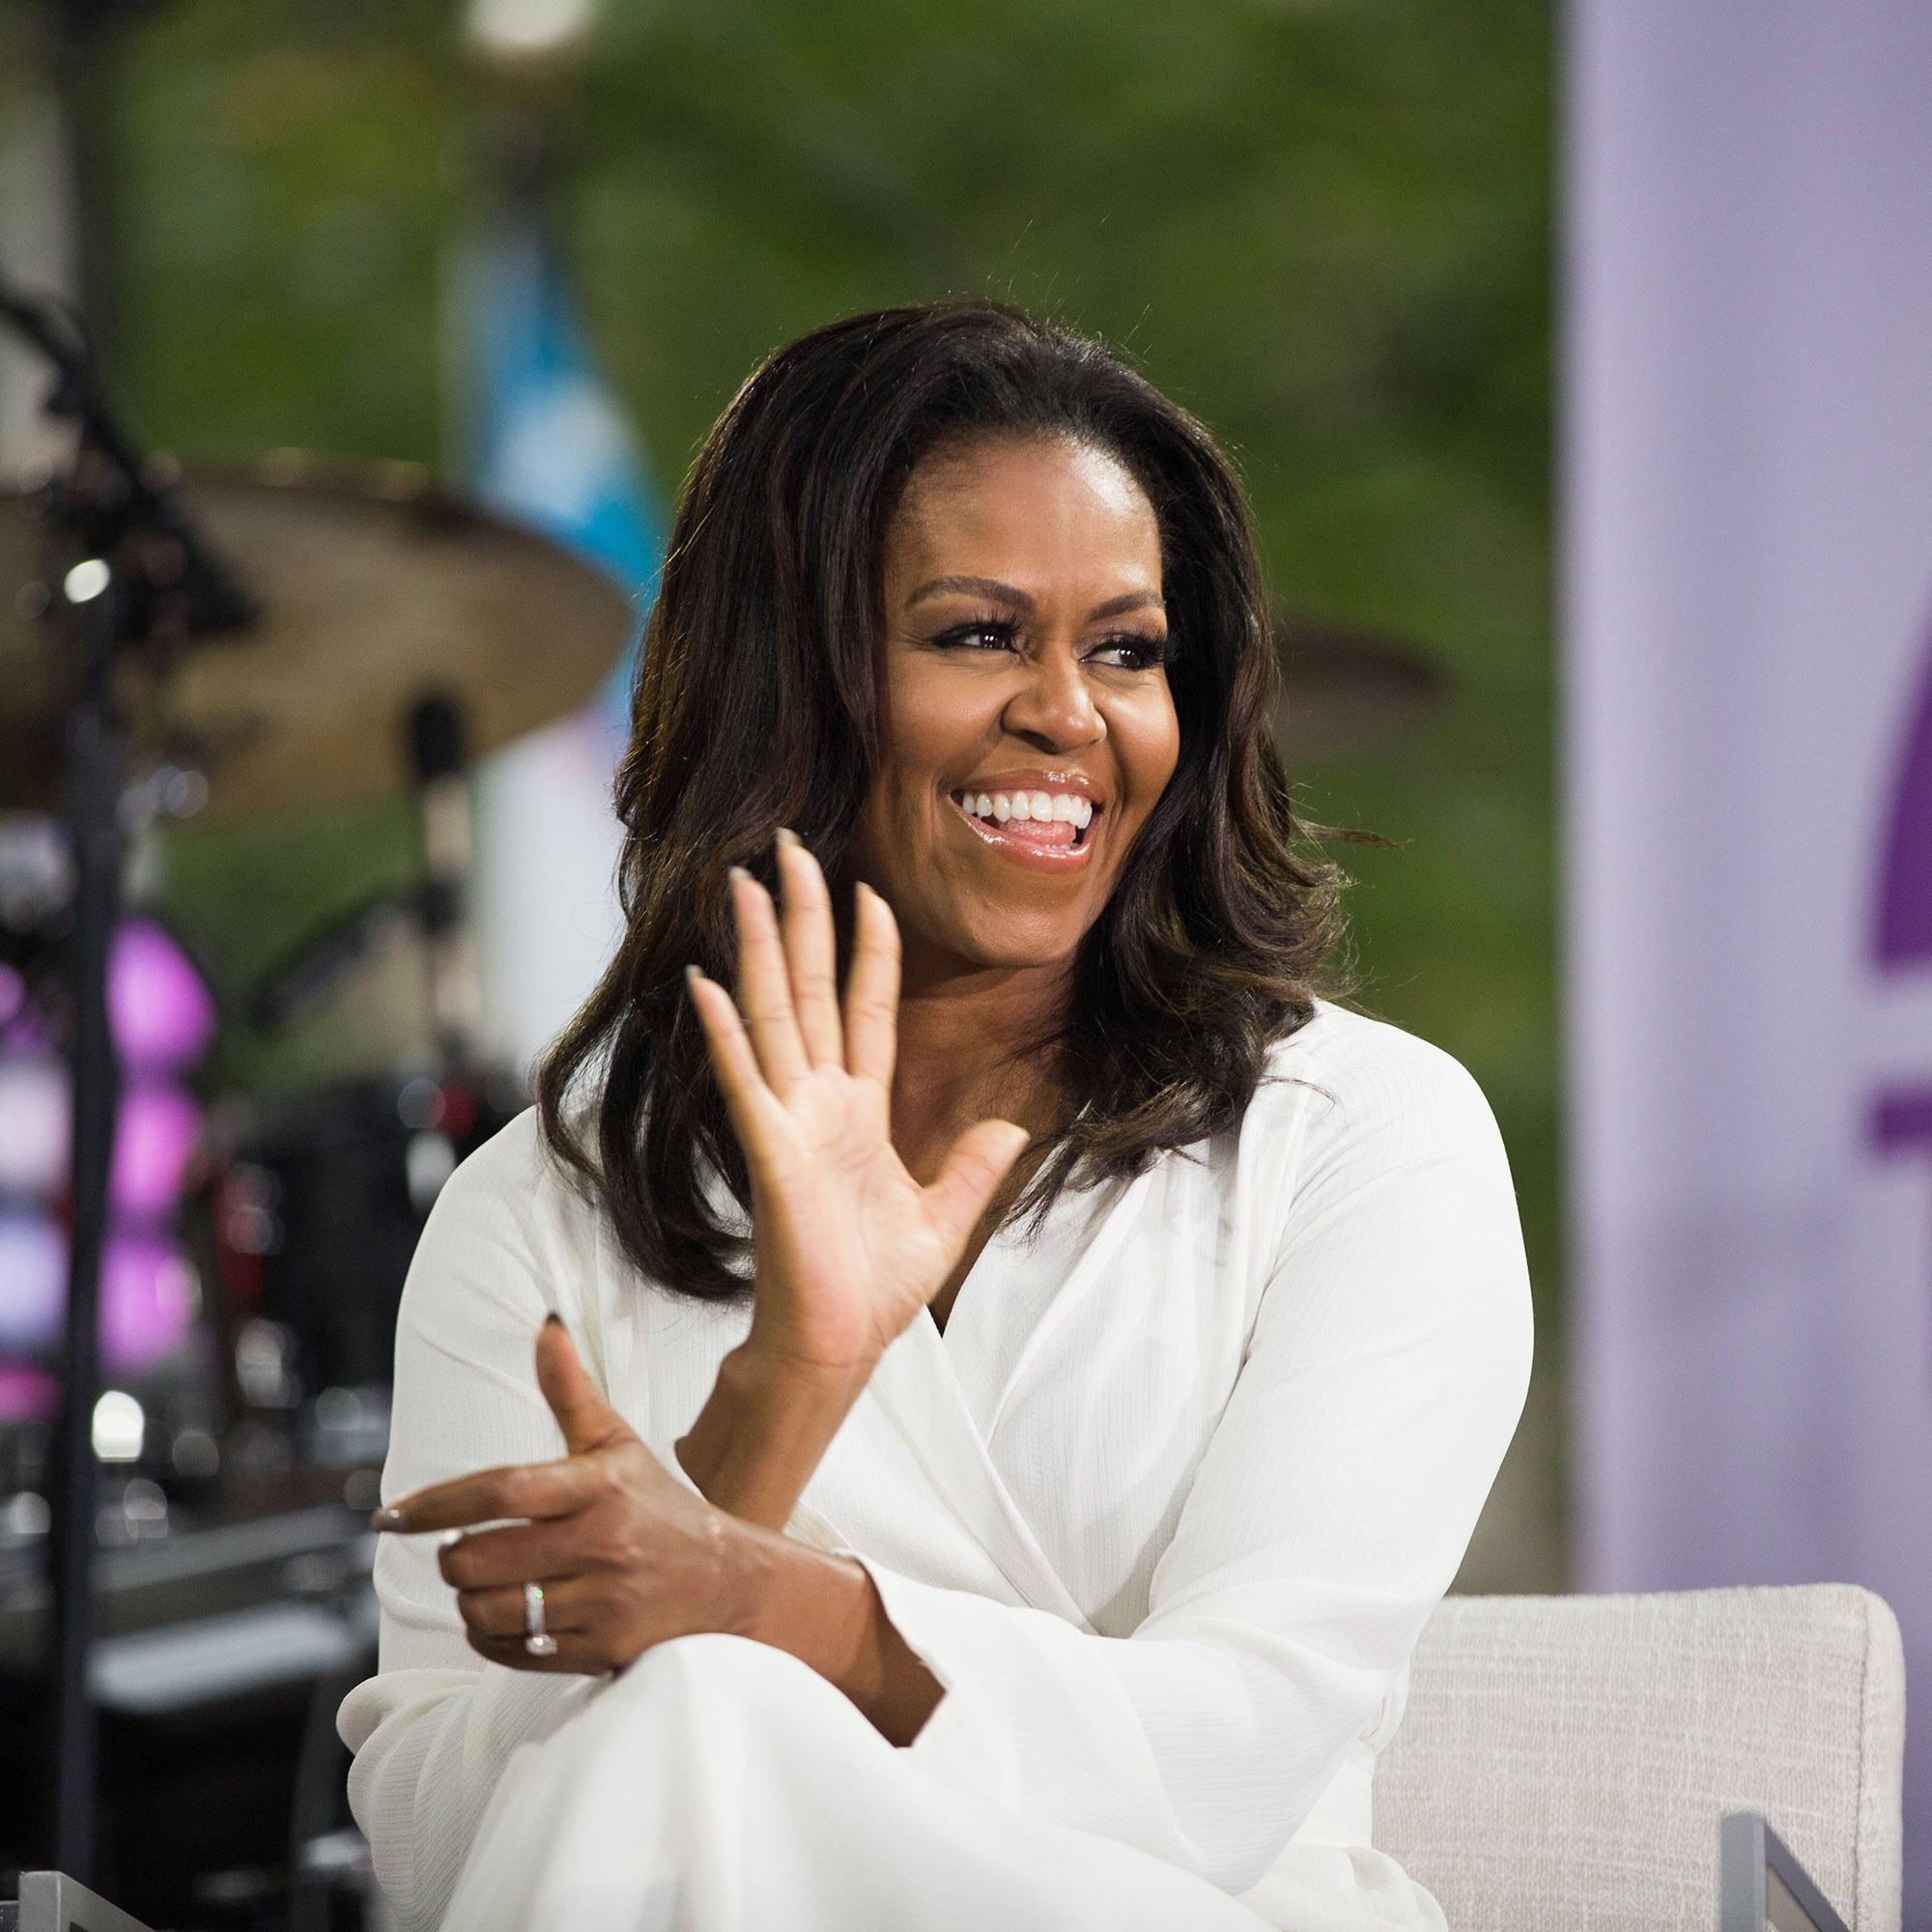 Michelle Obama Launches the Global Girls Alliance on the Today Show